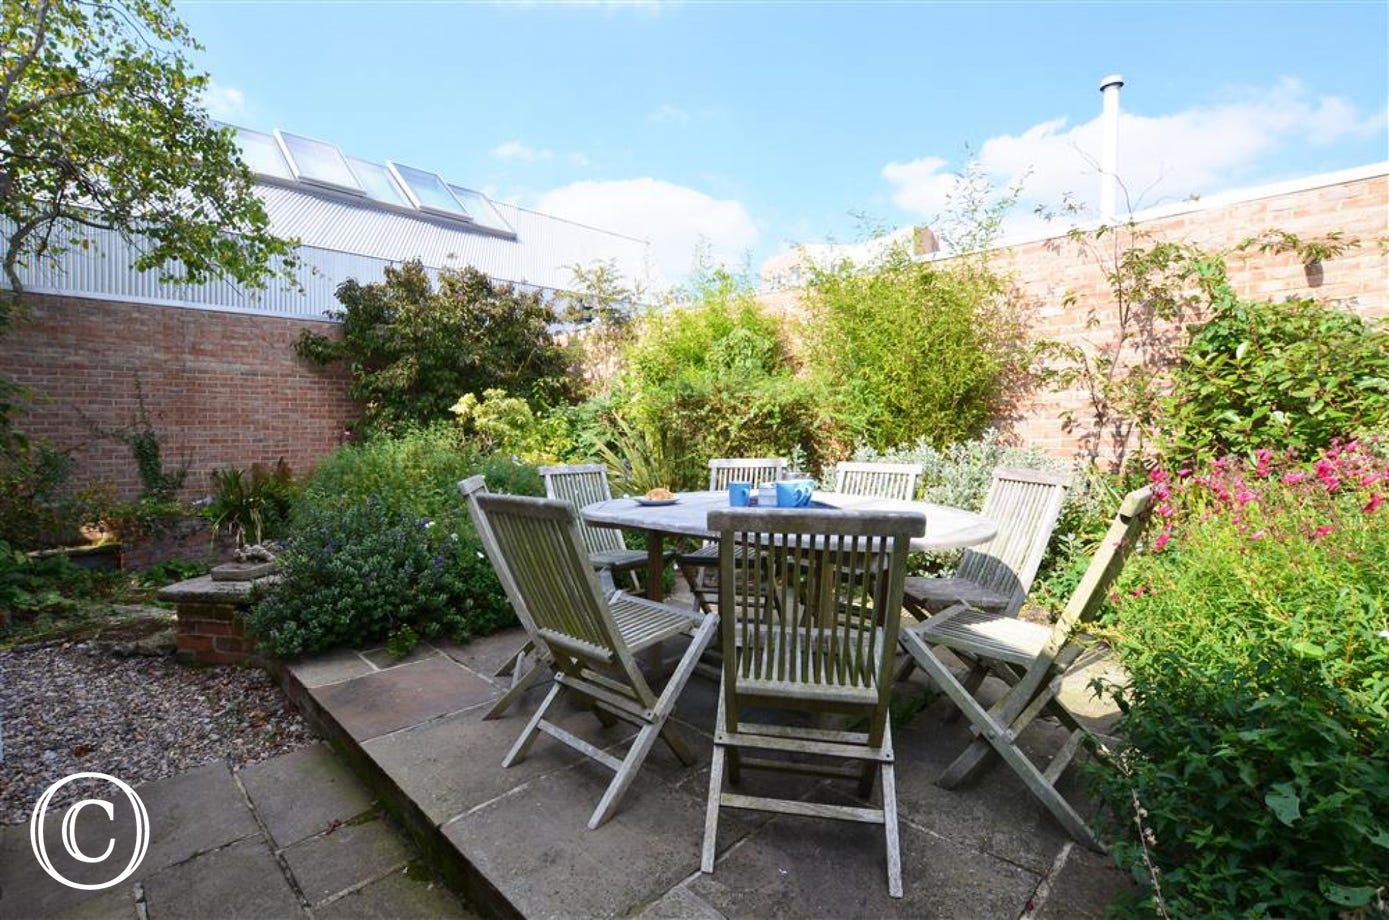 Relax and enjoy the outside space at Samphire House.